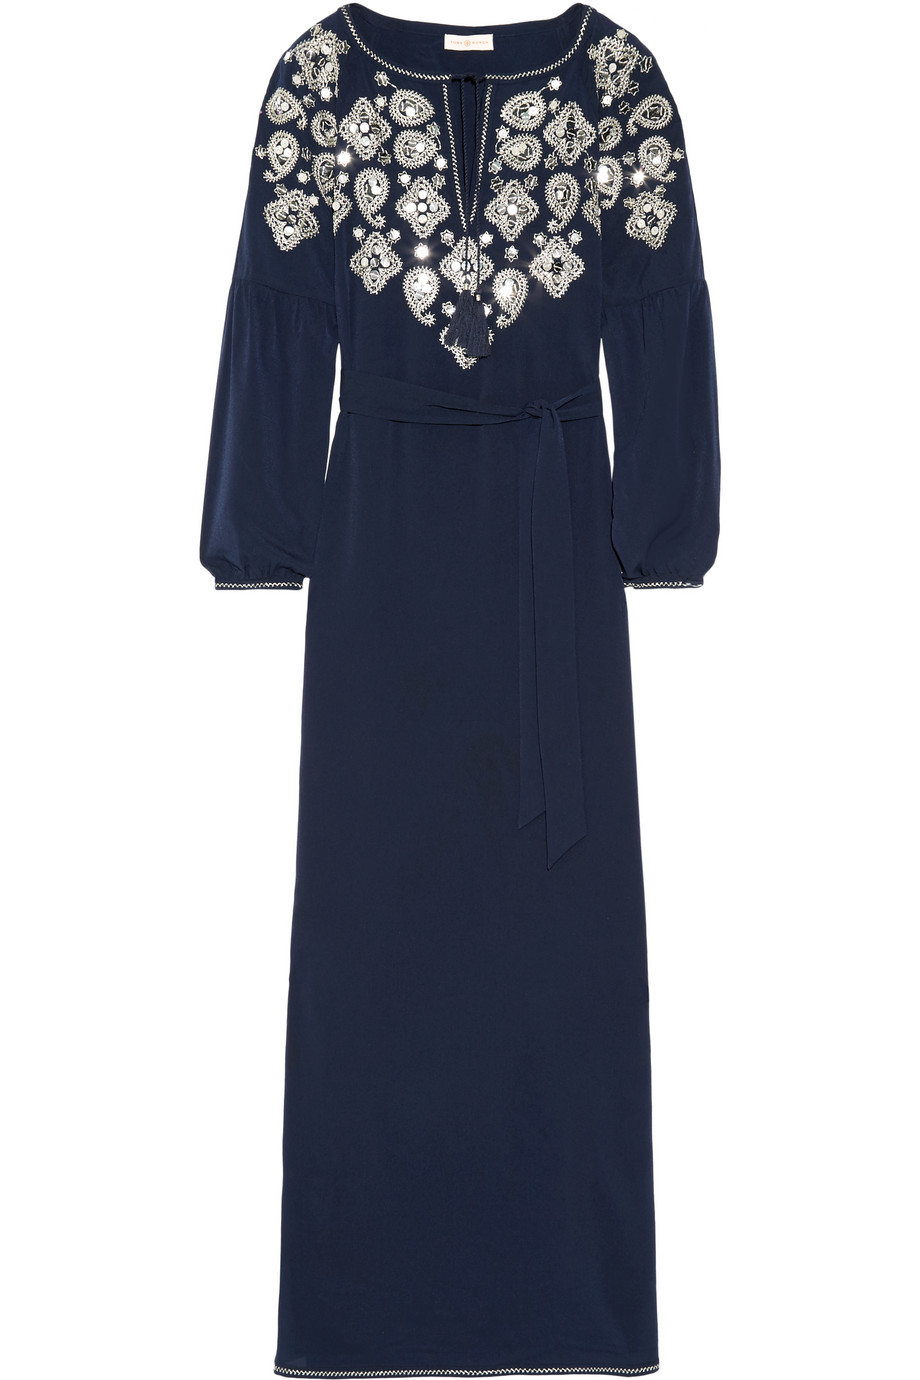 Tory Burch Lisette Embellished Voile Kaftan, Midnight Blue, Women's - Embroidery, Size: 2